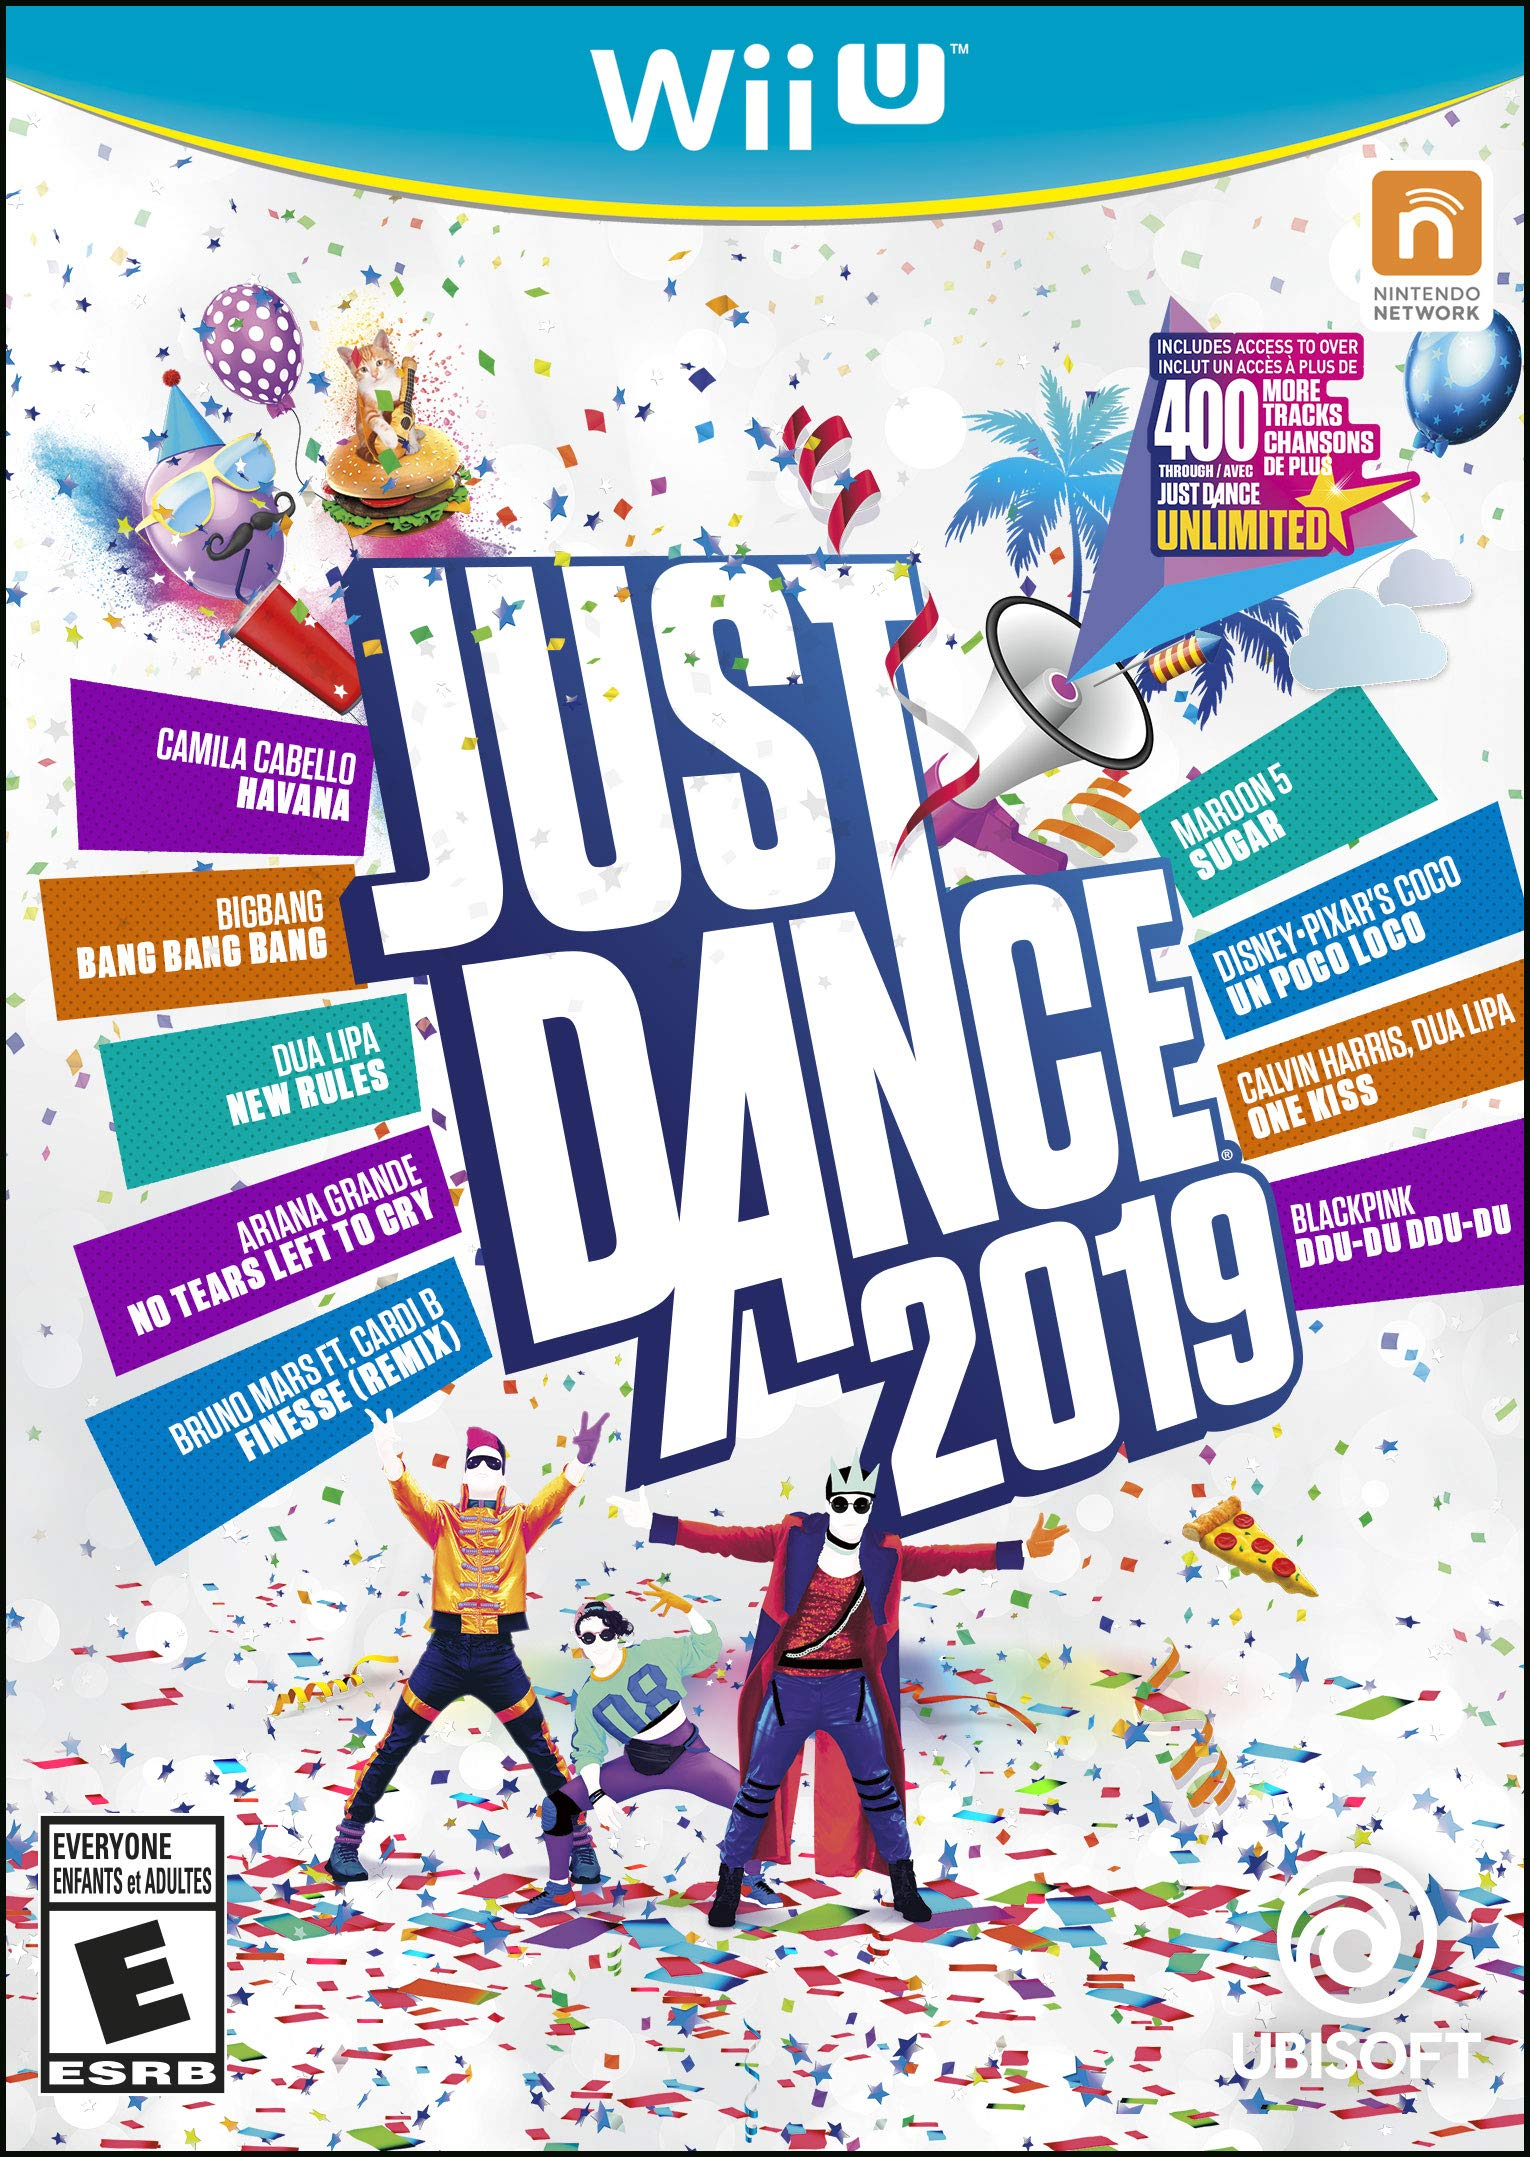 Just Dance 2019 - Wii U Standard Edition by Ubisoft (Image #1)